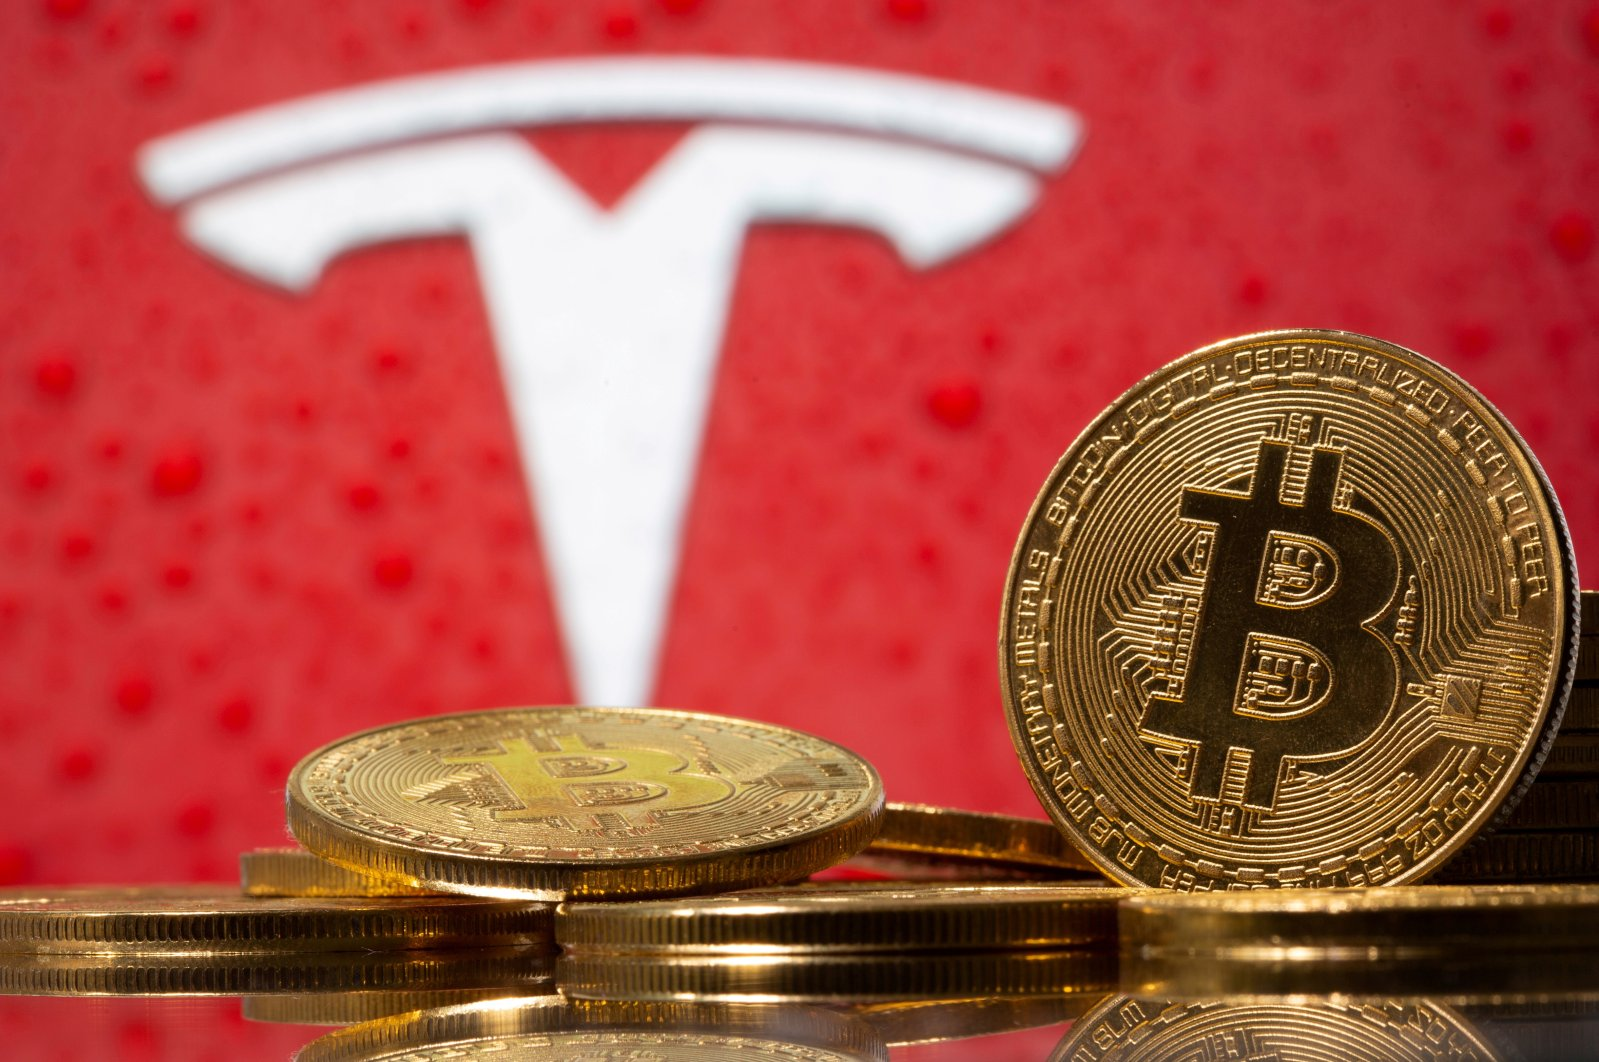 Representations of virtual currency Bitcoin are seen in front of Tesla logo in this illustration image, Feb. 9, 2021. (Reuters Photo)